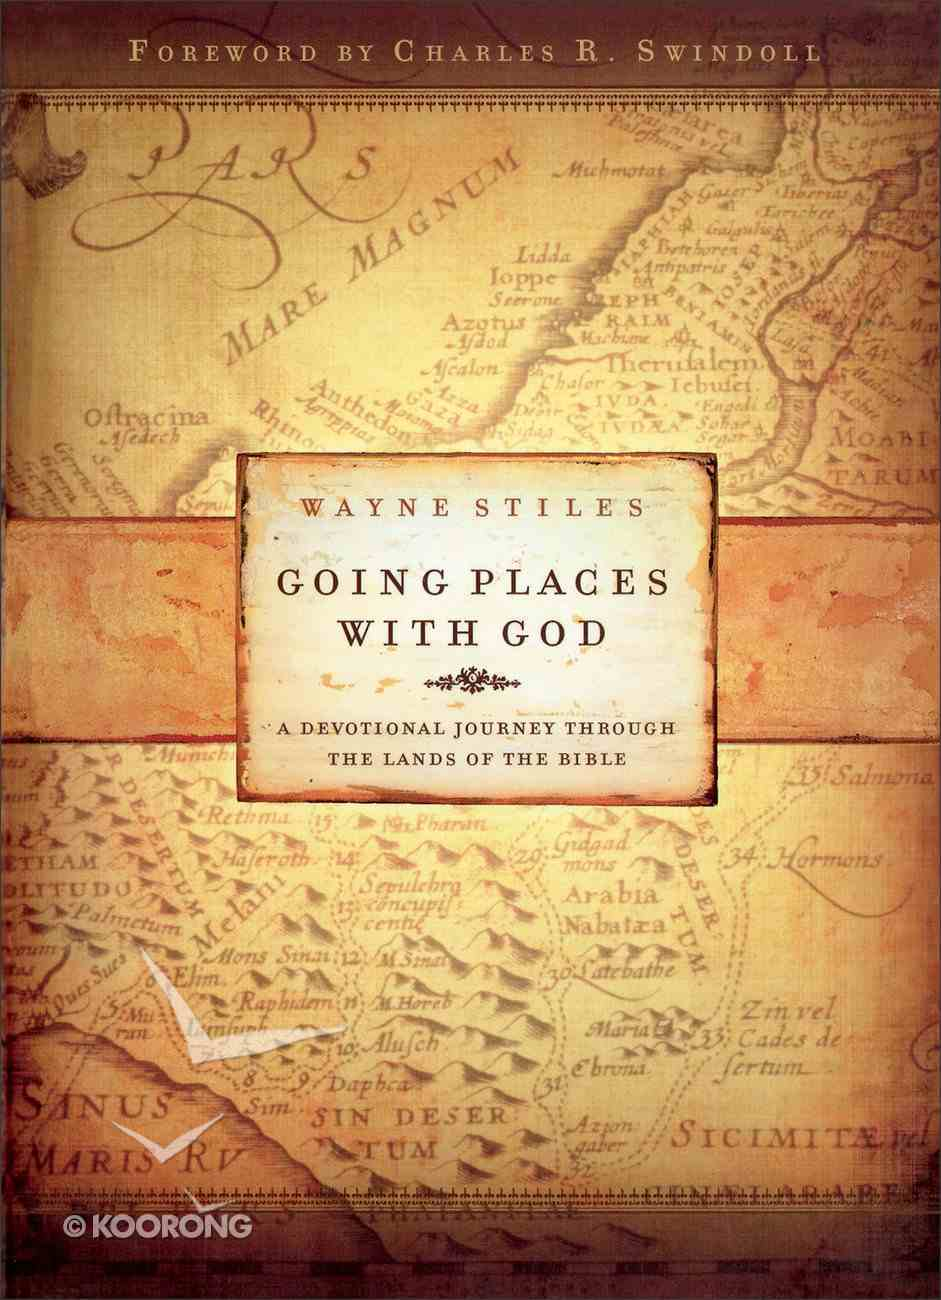 Going Places With God: A Devotional Journey Through the Lands of the Bible Paperback